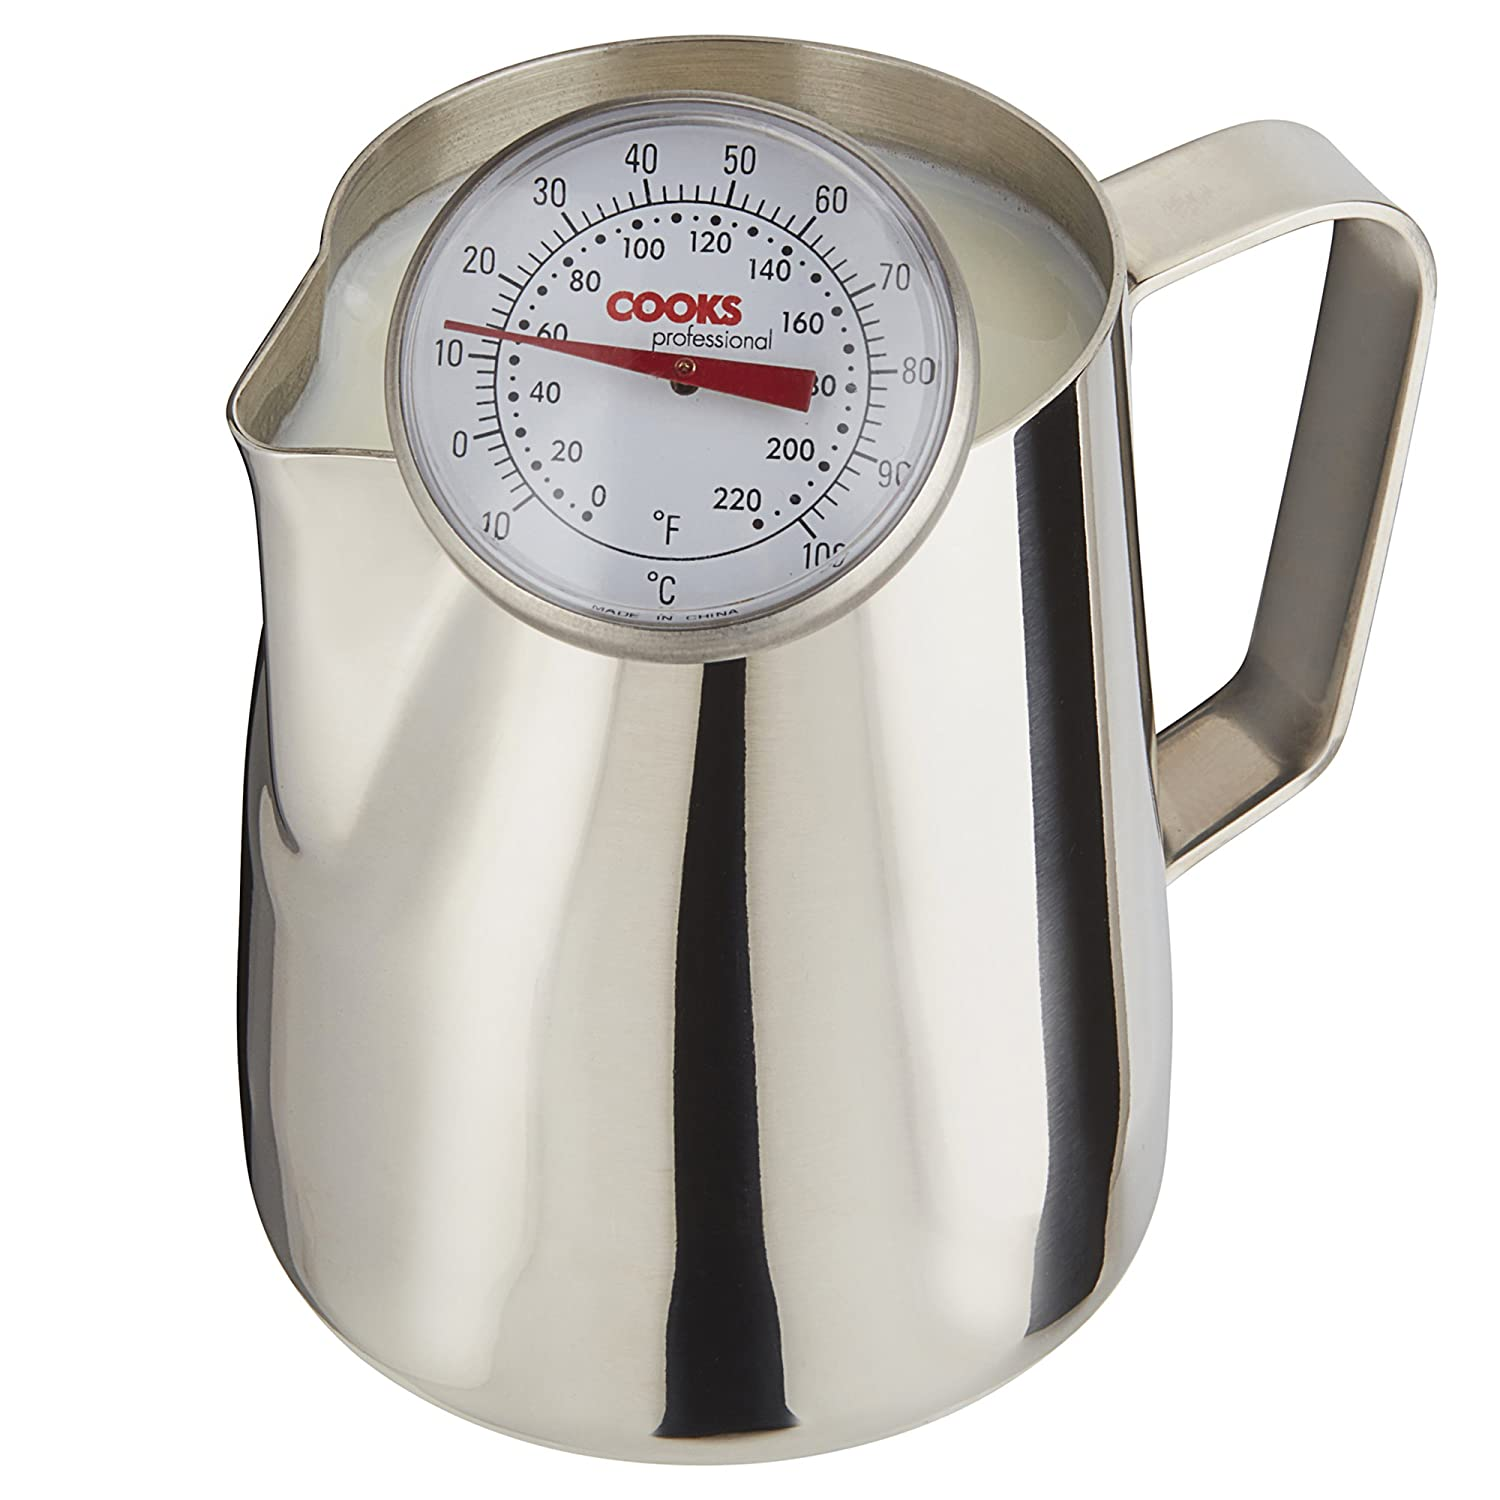 Cooks Professional Milk Frothing Jug & Thermometer, Barista Style Lattes, Coffee, Hot Chocolate Stainless Steel Clifford James